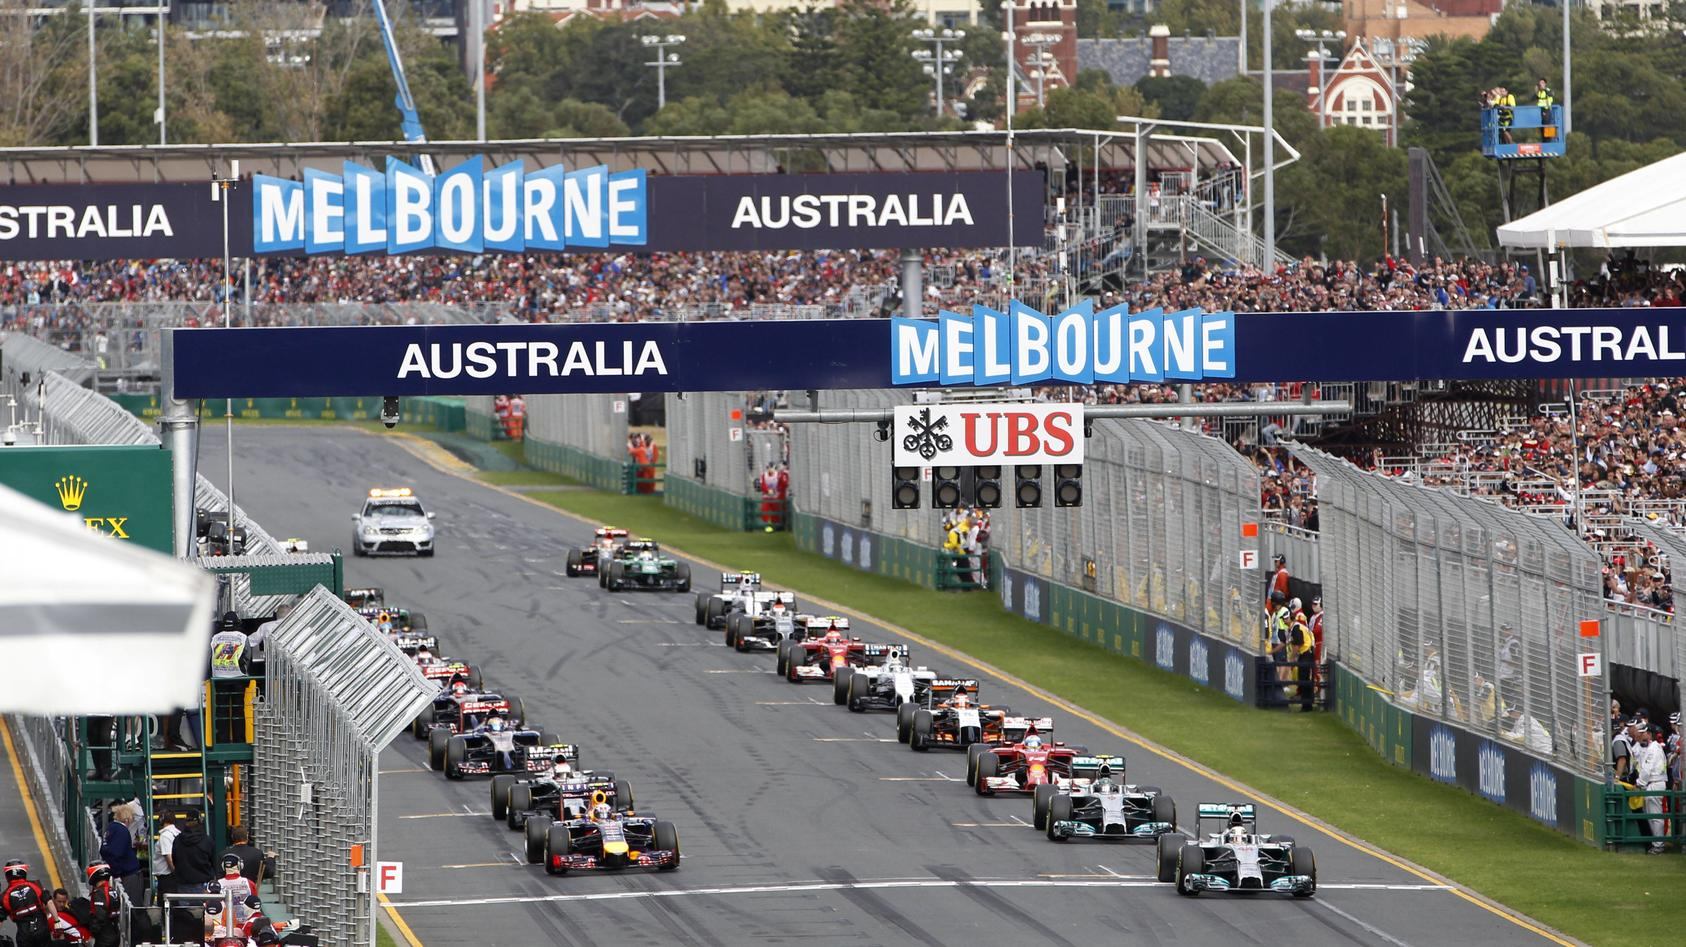 Motorsports FIA Formula One World Championship 2014 Grand Prix of Australia 44 Lewis Hamilton GB